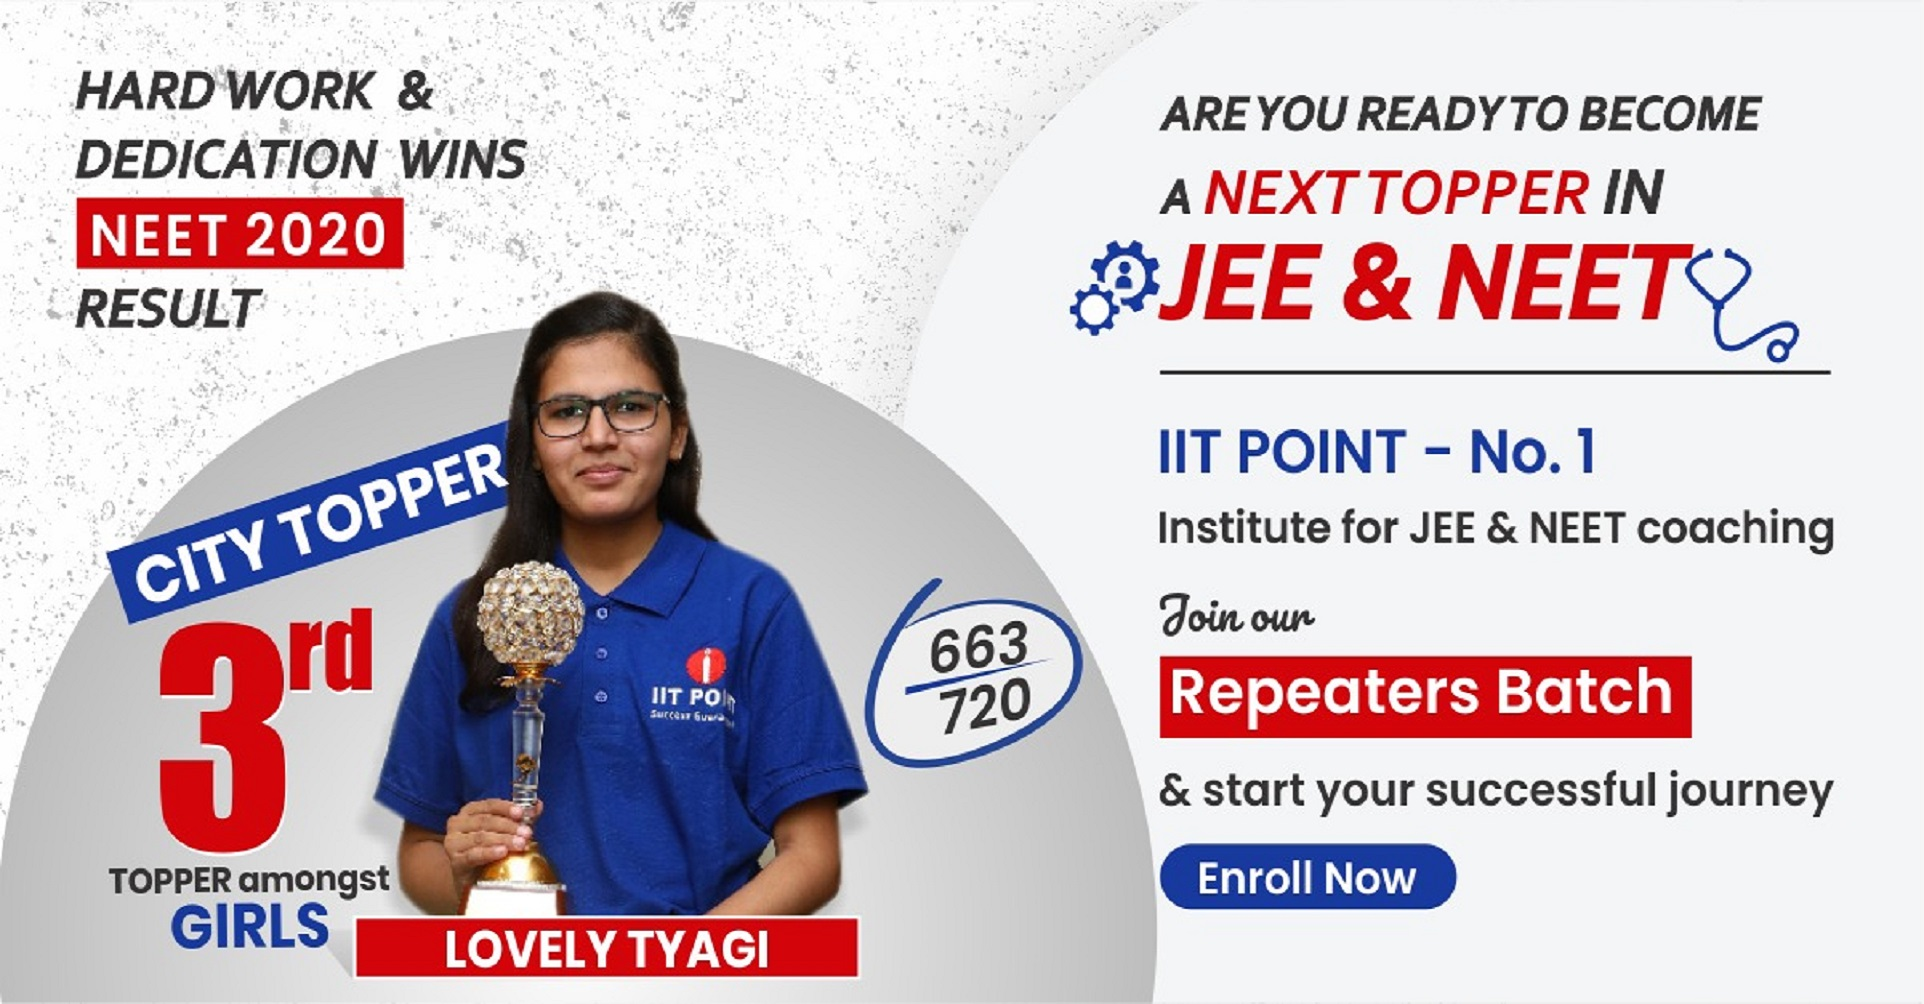 iit-neet-jee repeater classes